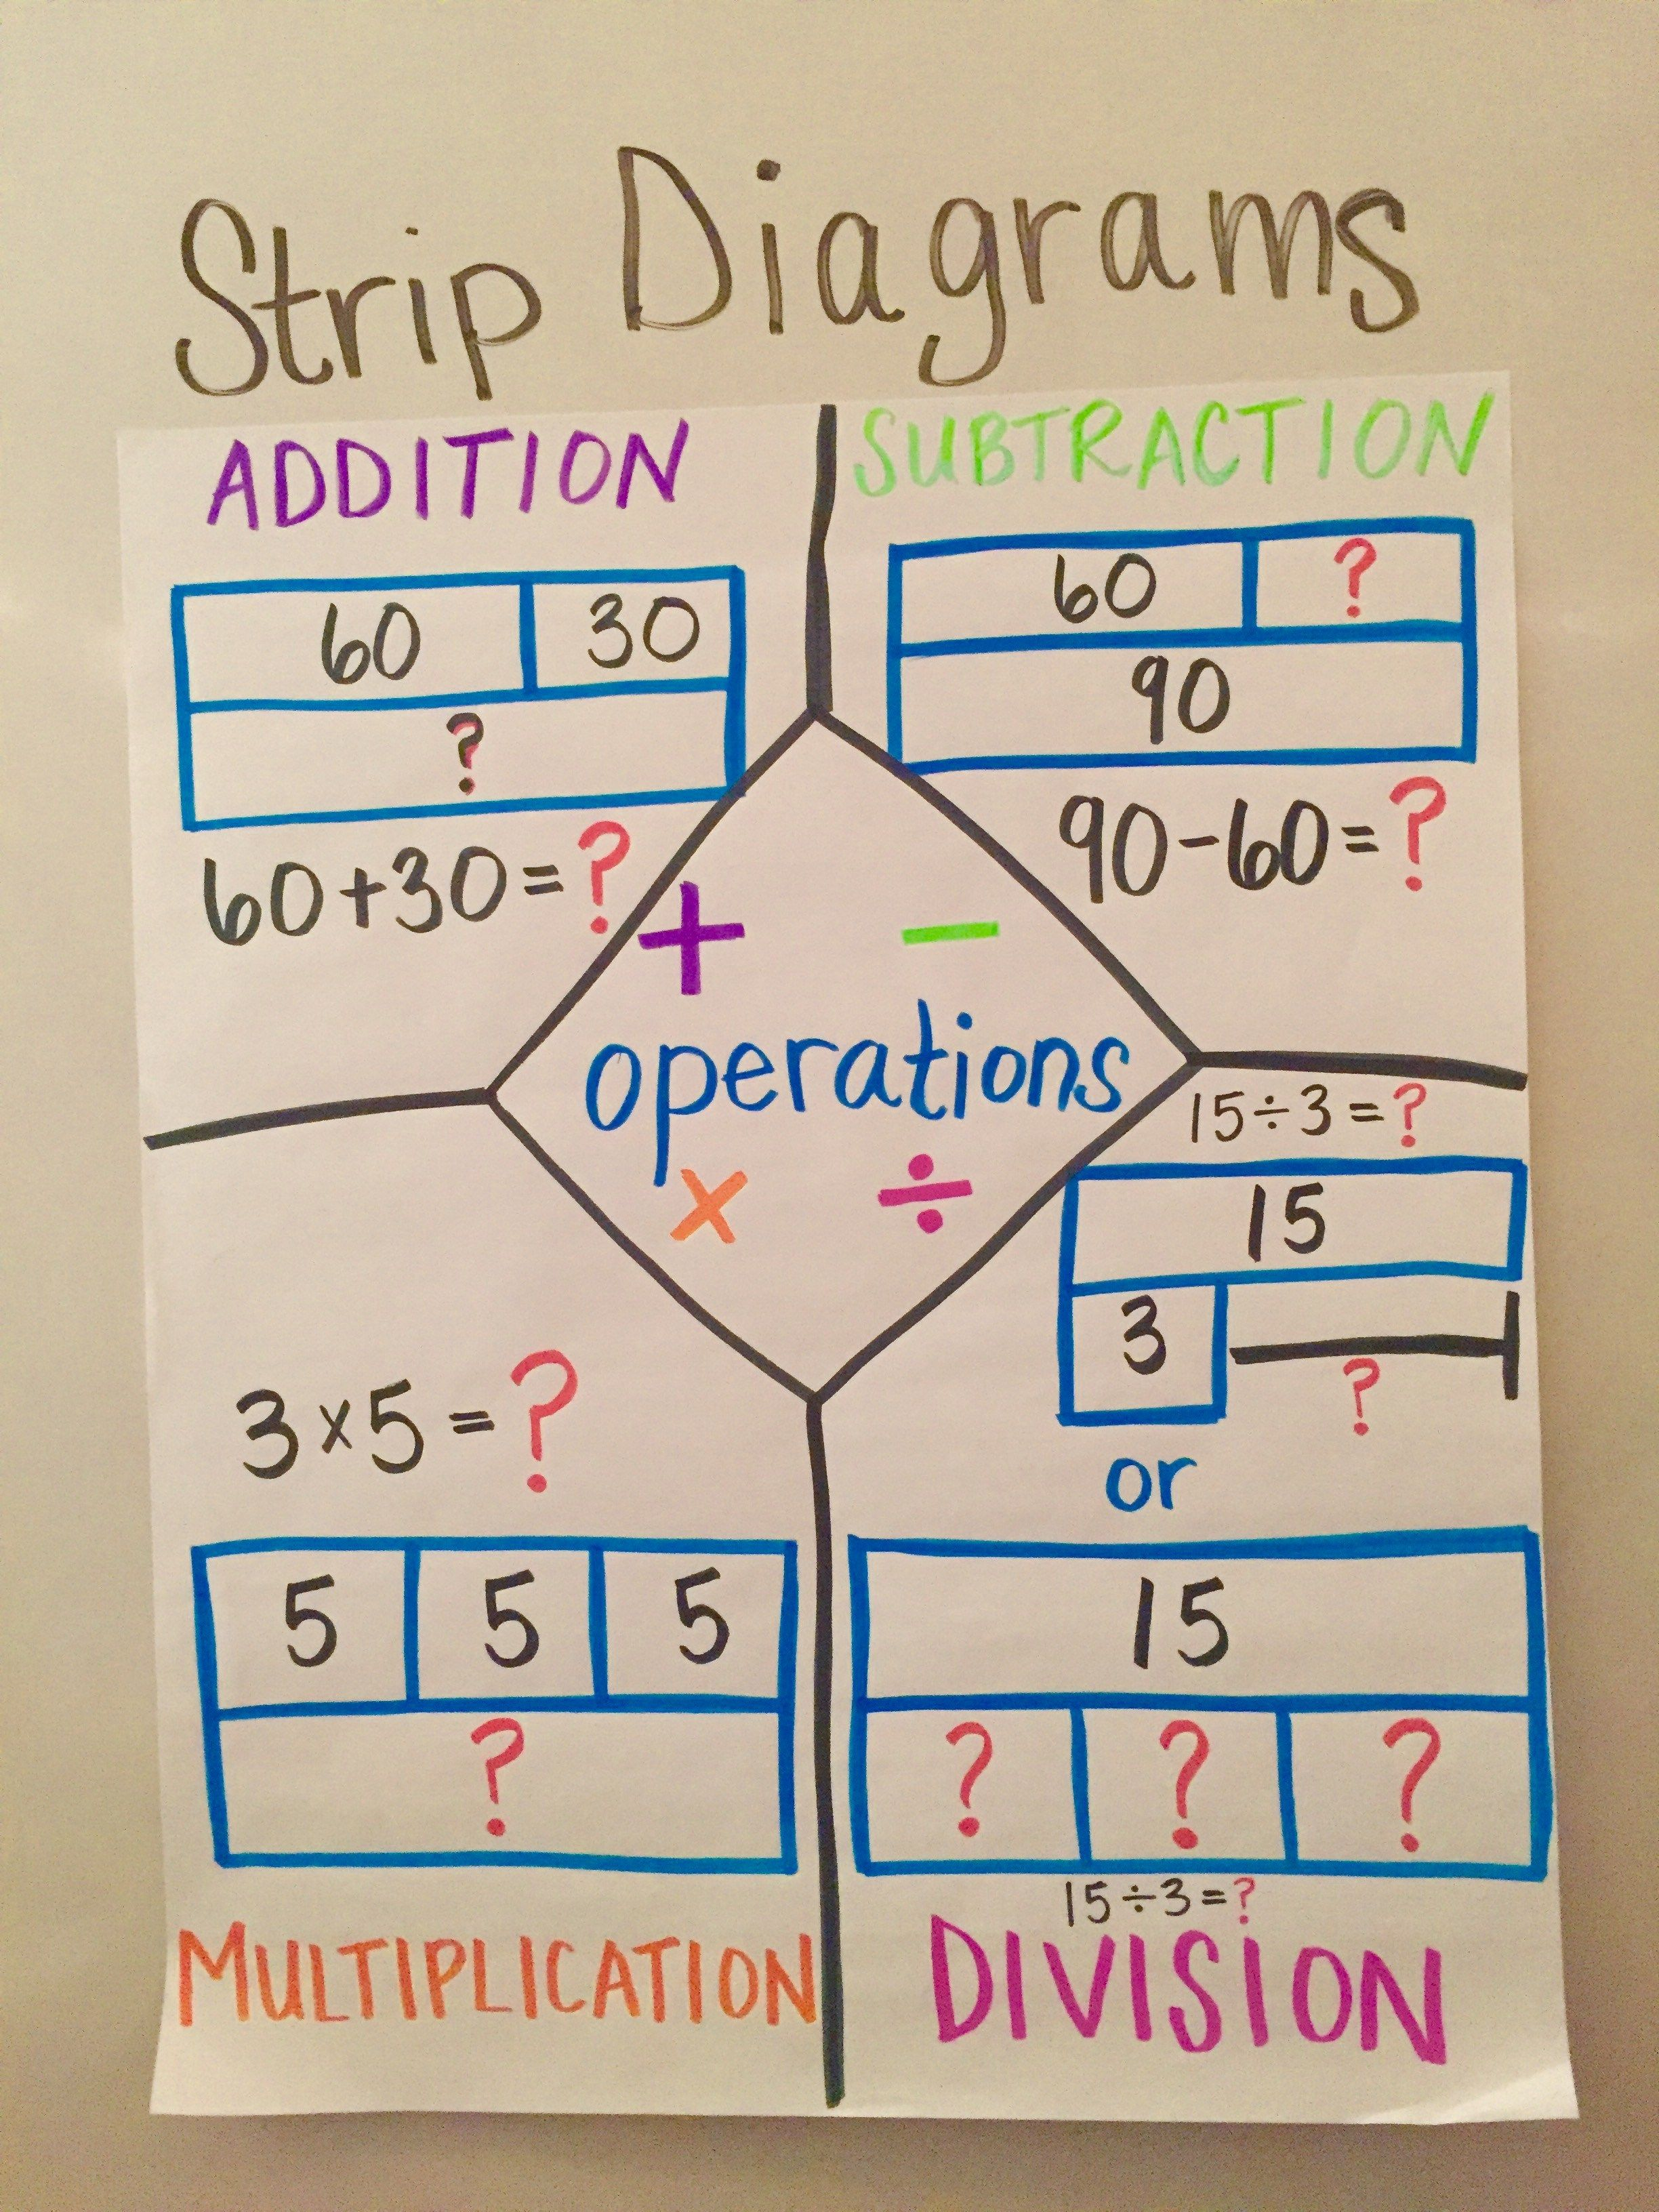 small resolution of image result for strip diagram anchor chart